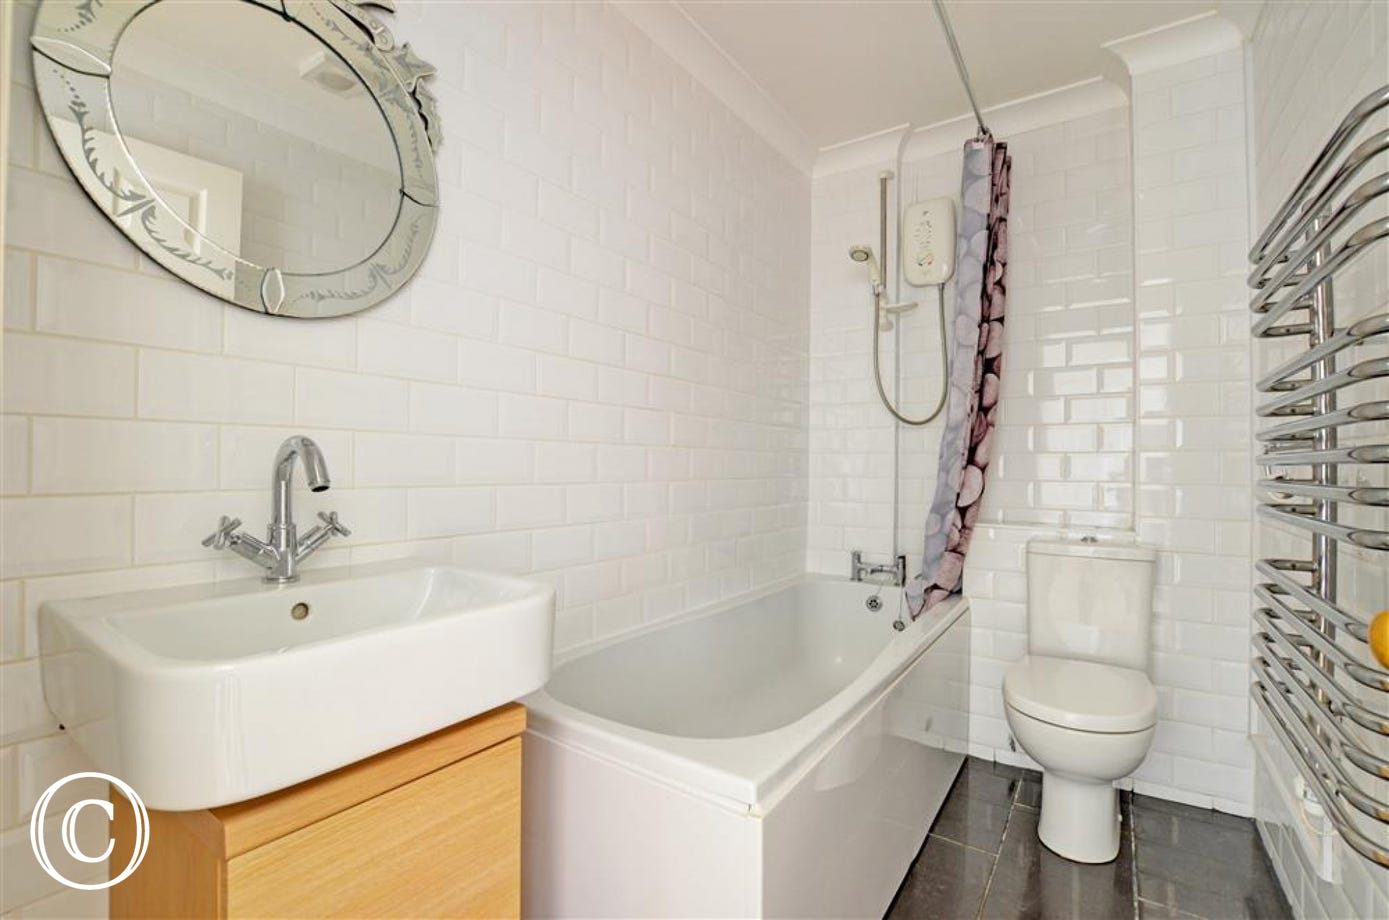 A modern bathroom completes the facilities